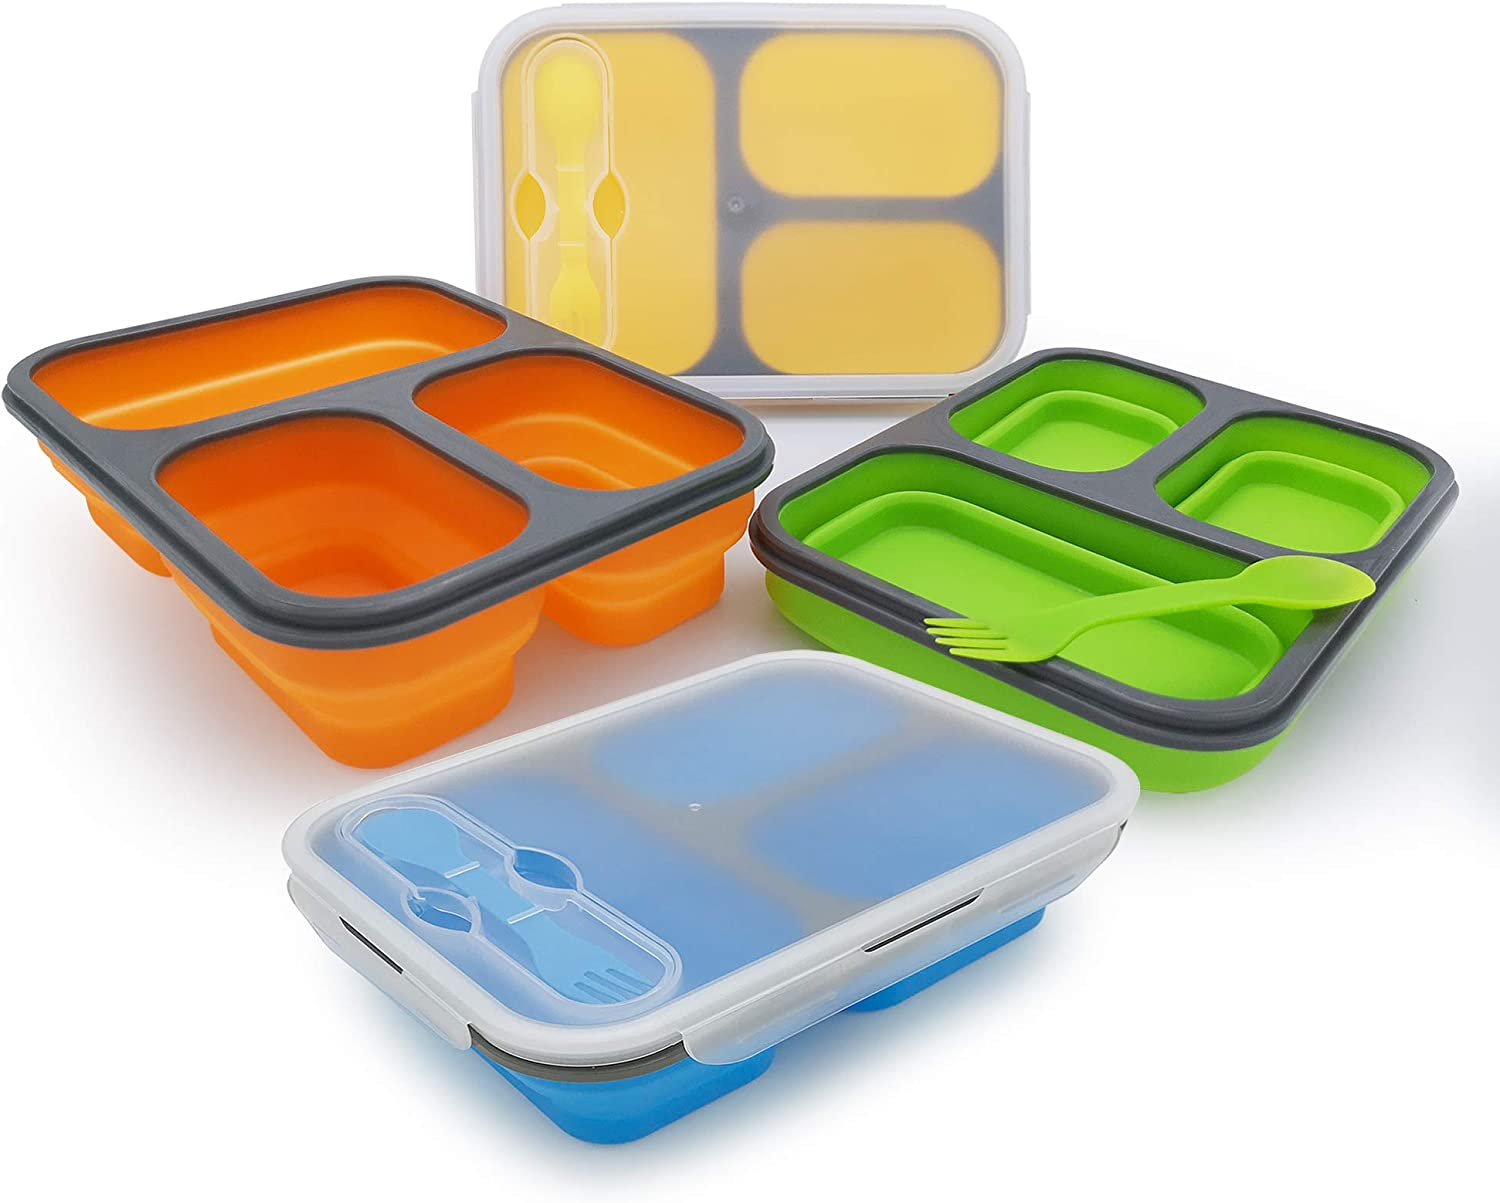 Exclusivo Bolsillo Bento Lunch Box for Women Men & Kids With Spoon & Fork,BPA Free,Collapsible and Leakproof Food Grade Silicone Food Storage Containers with 3 Compartments (4 Color Pack)